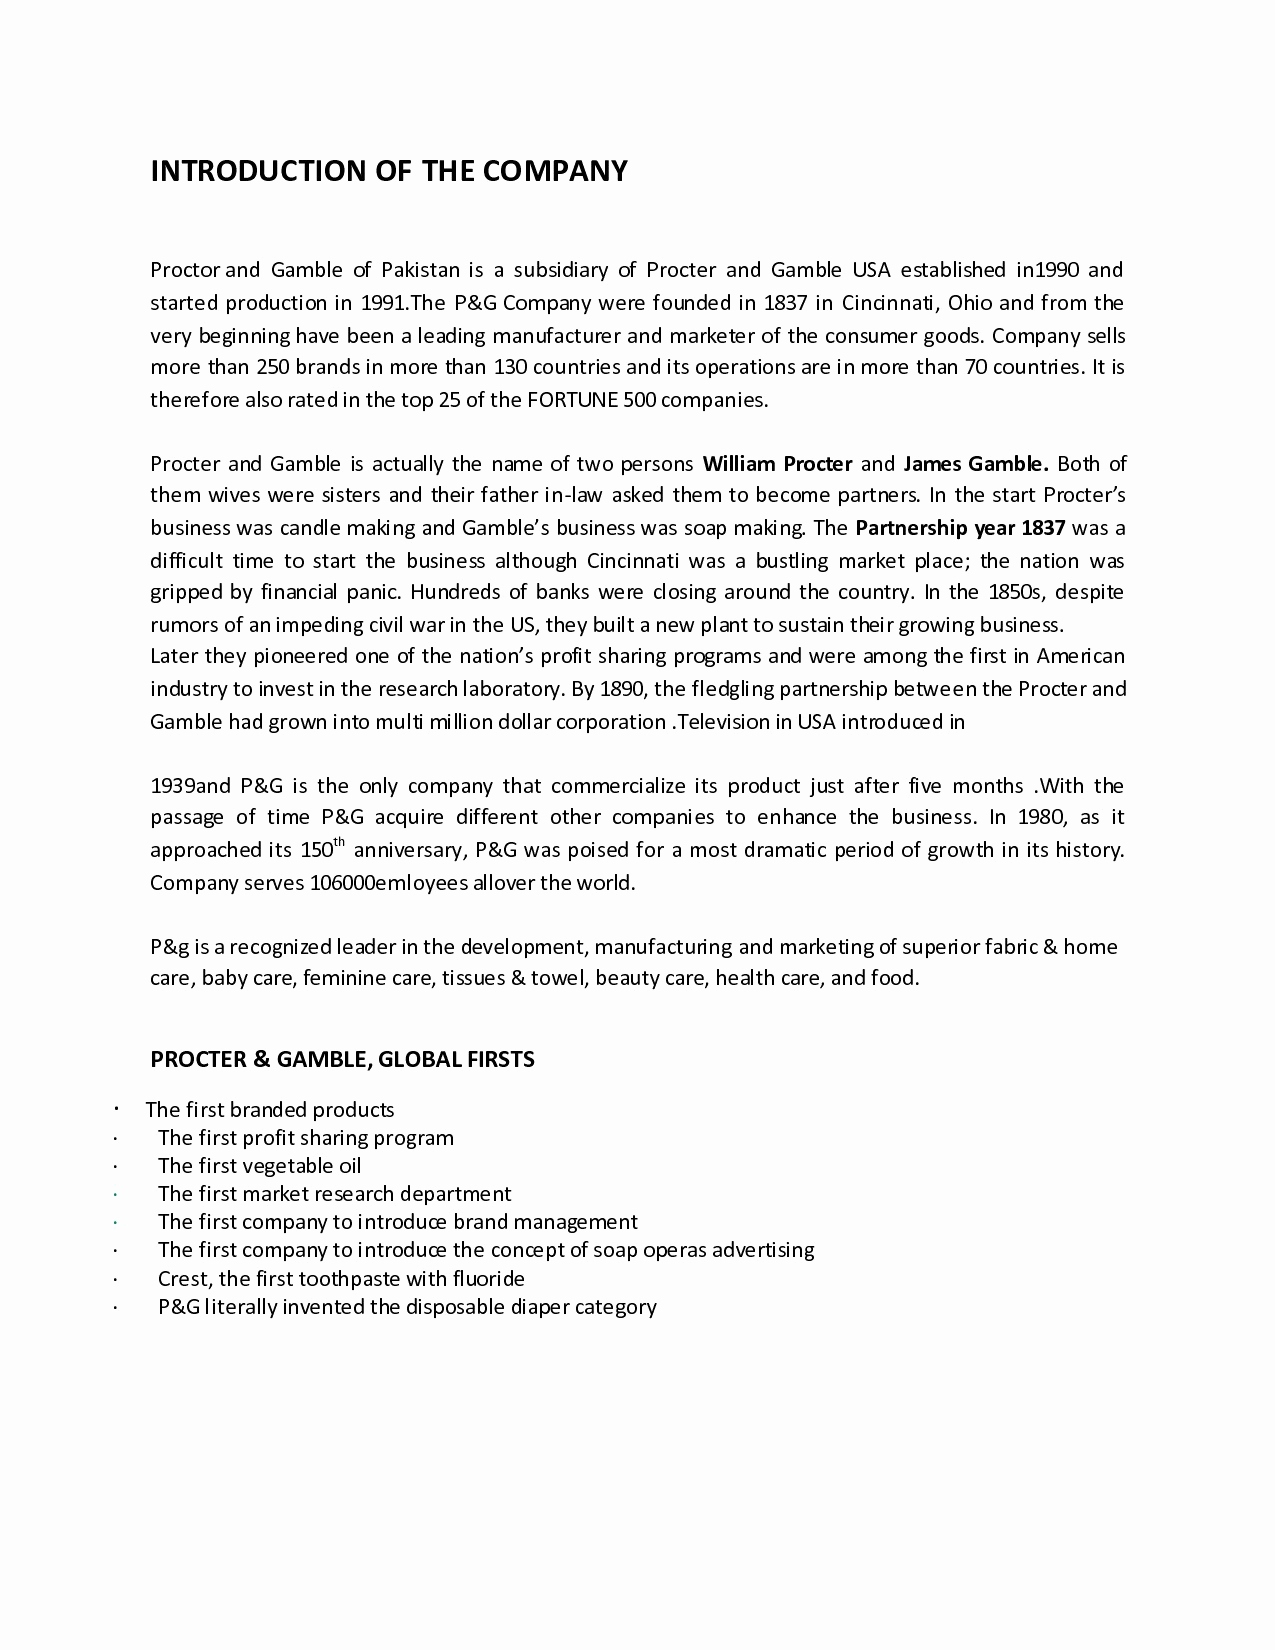 Media Cover Letter Template - Awesome Free Media Kit Templatebest Bussines Template